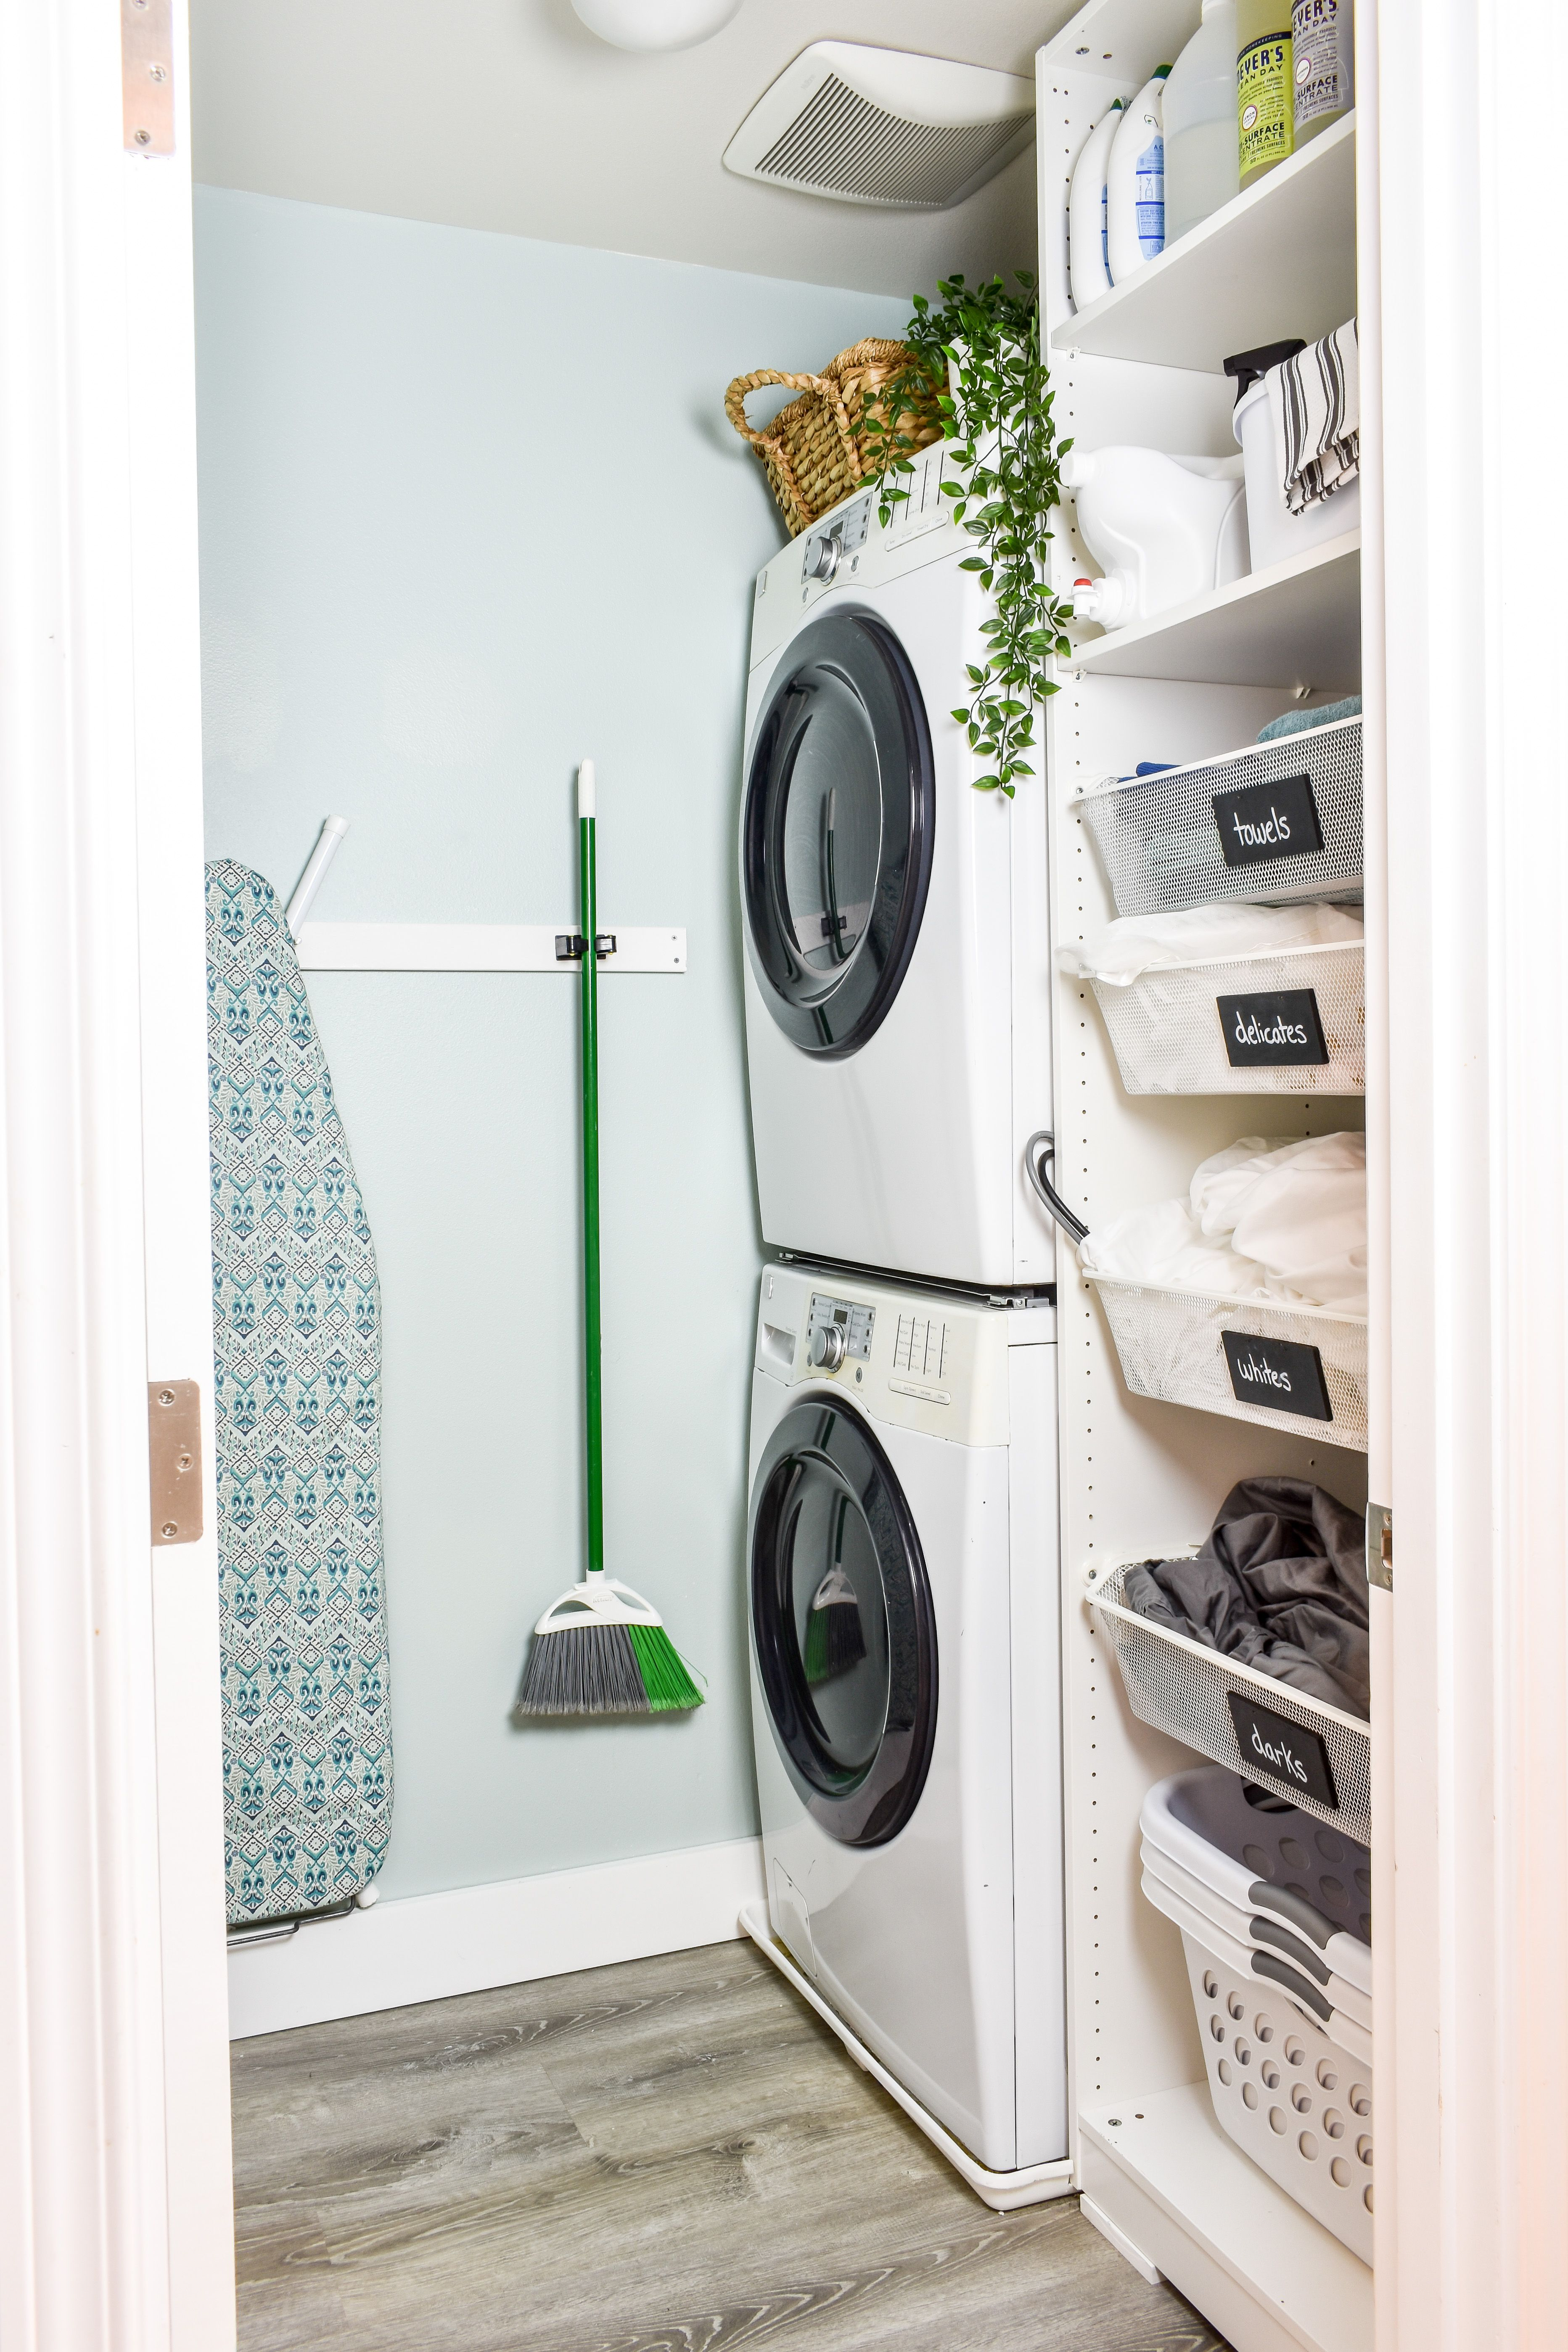 Small Laundry Room Makeover Small Laundry Room Makeover Washer Dryer Laundry Room Laundry Room Makeover